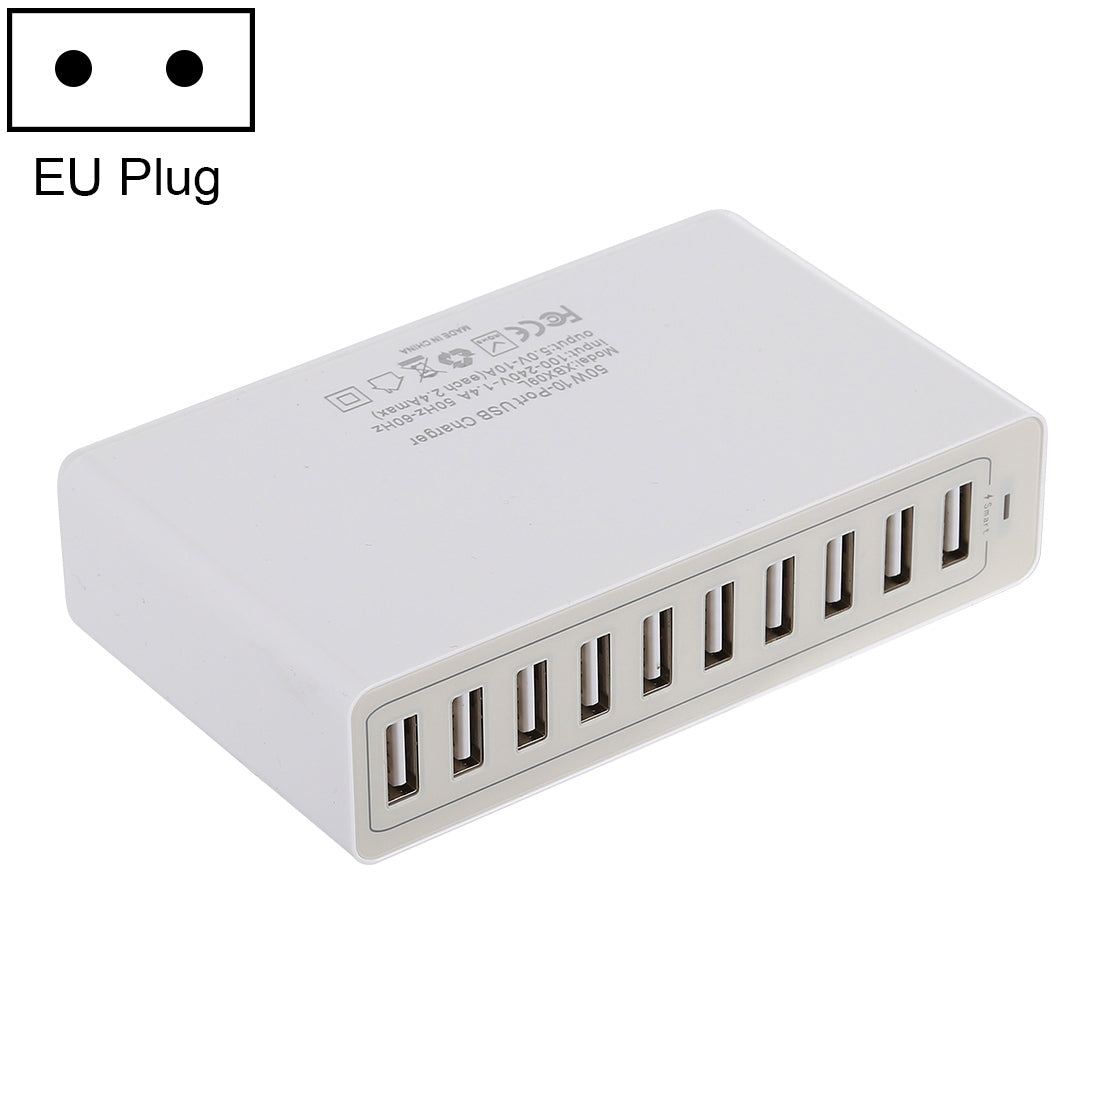 XBX09L 50W 5V 2.4A 10 USB Ports Quick Charger Travel Charger, EU Plug(White)